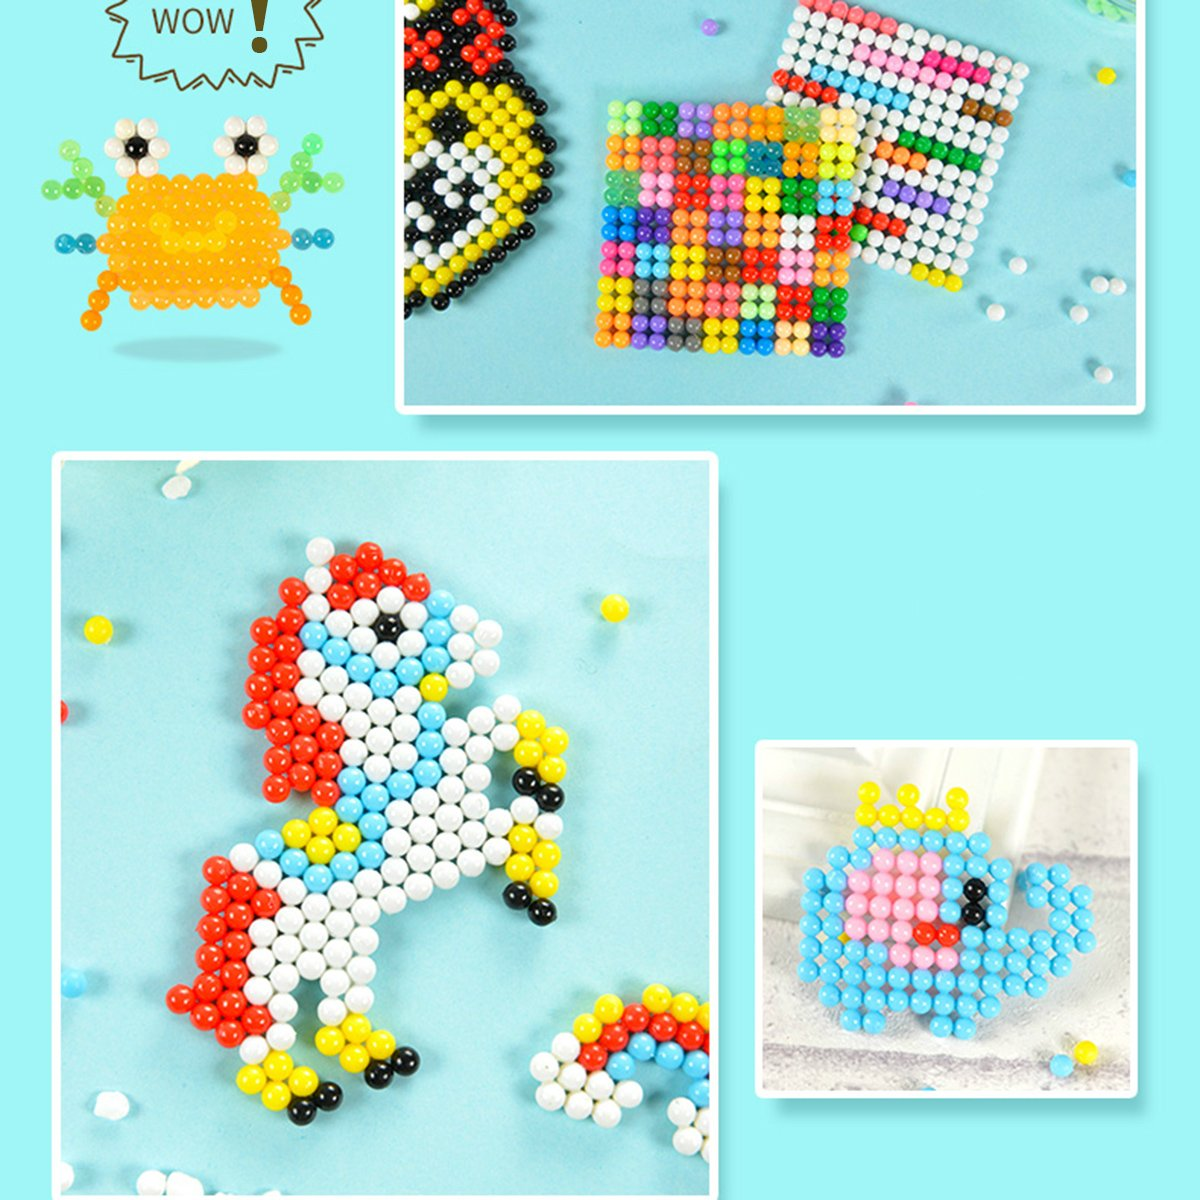 Aqua water beads Beginners Studio perler fusion Craft beads Art Crafts toys for kids non toxic with bead palette, layout table, bead pen, bead peeler, sprayer, template sheets -15 colors(2400pcs) by QIAONIUNIU (Image #1)